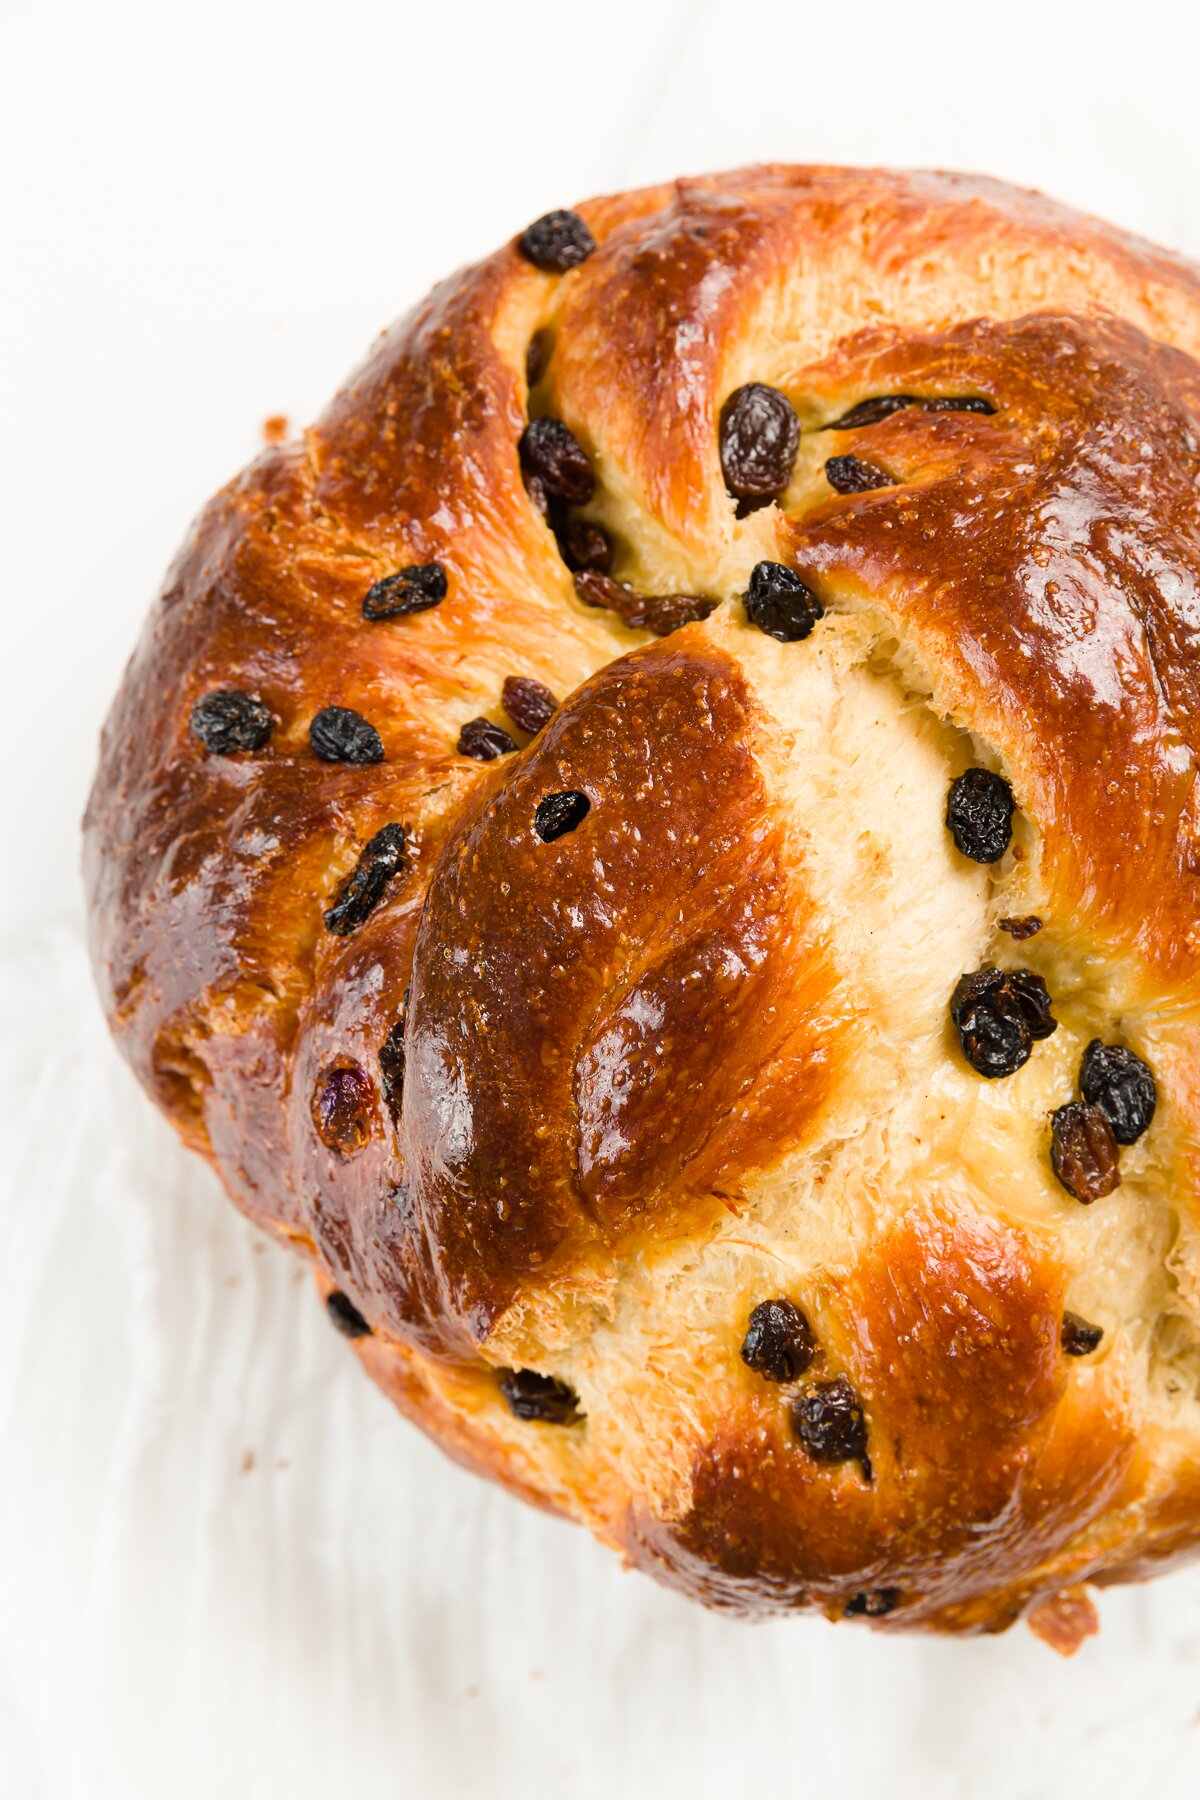 Close up shot of a round challah with rainsins